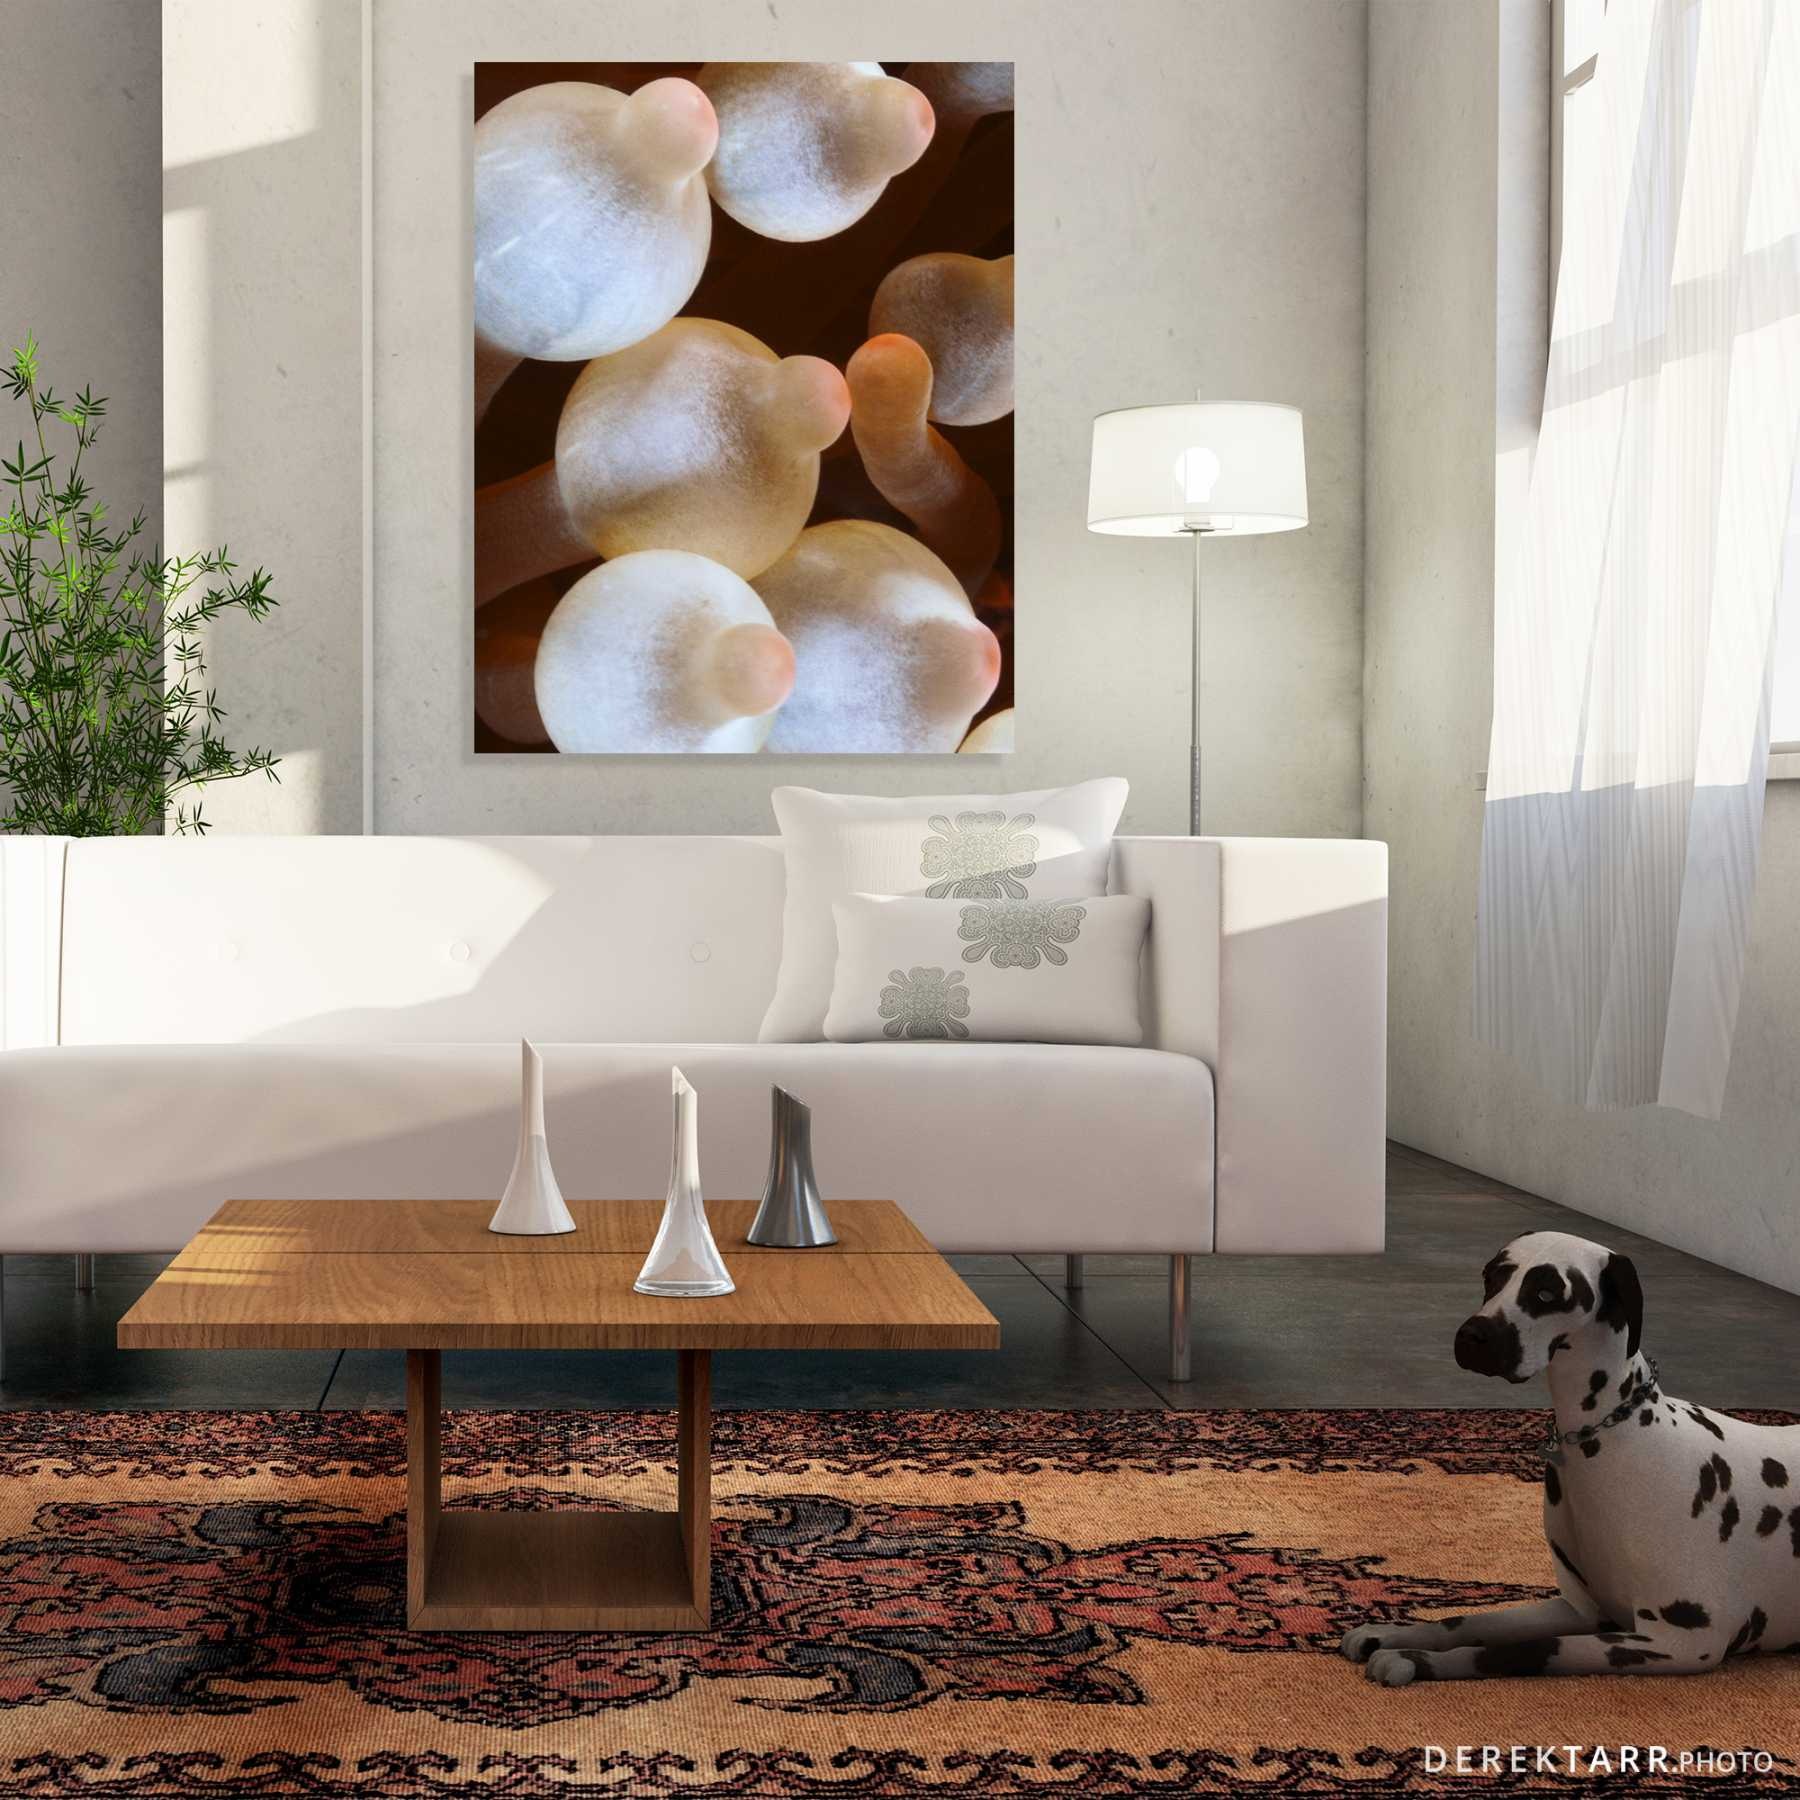 Living room with Bulb Anemones photo shown on the wall